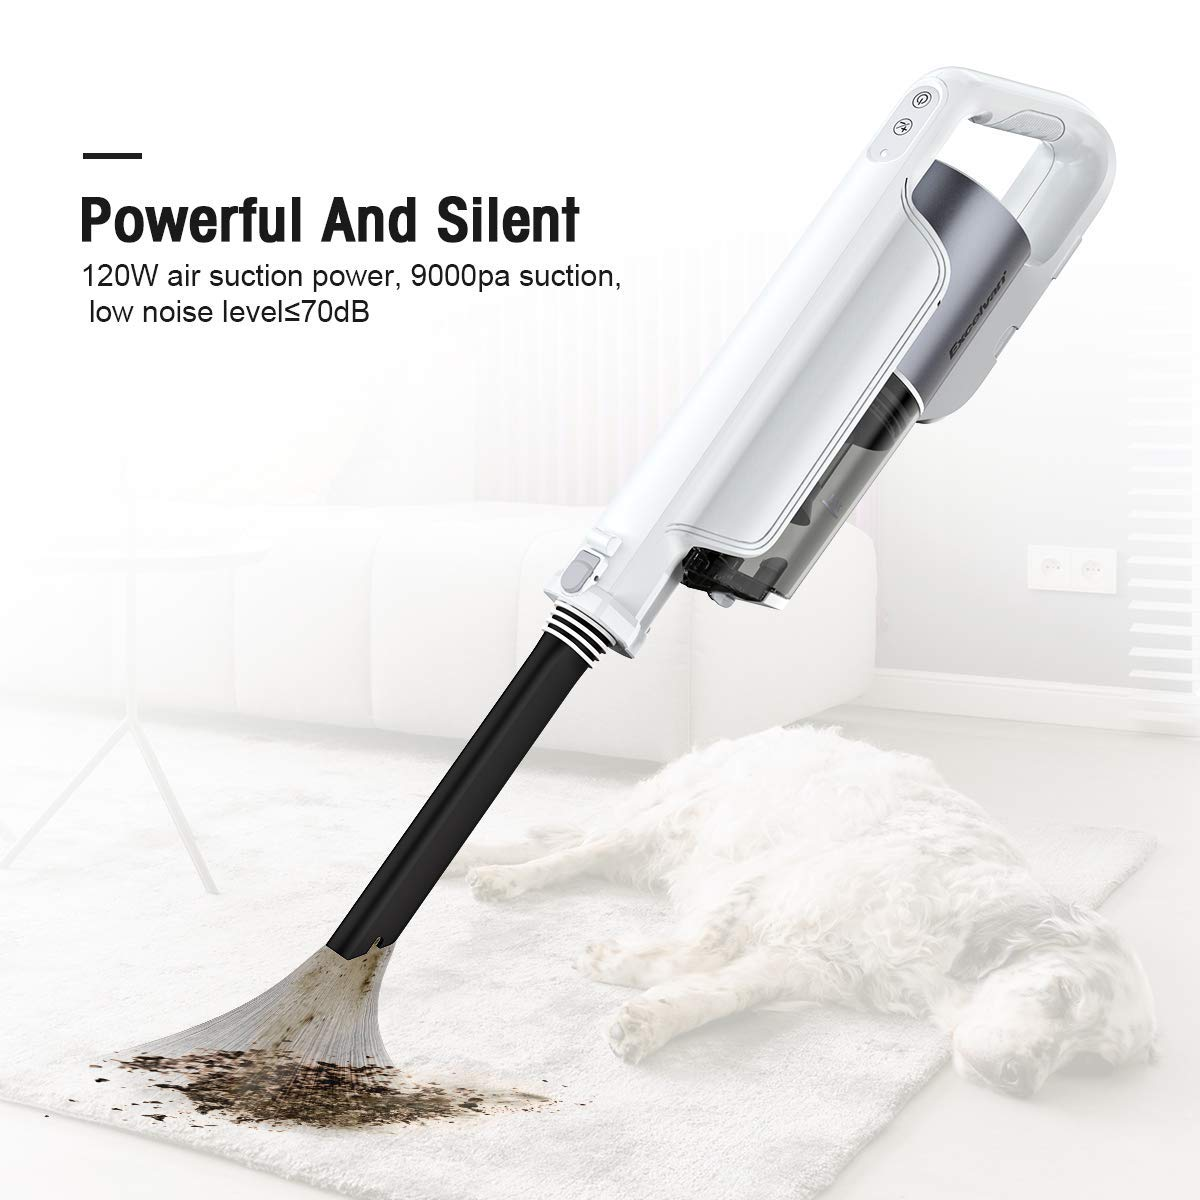 Excelvan 9000 PA High Power Cordless Vacuum Cleaner, Stick and Handheld 2 in 1, 2200mAh Bagless Upright Vacuum High & Low Suction Powers Adjustable